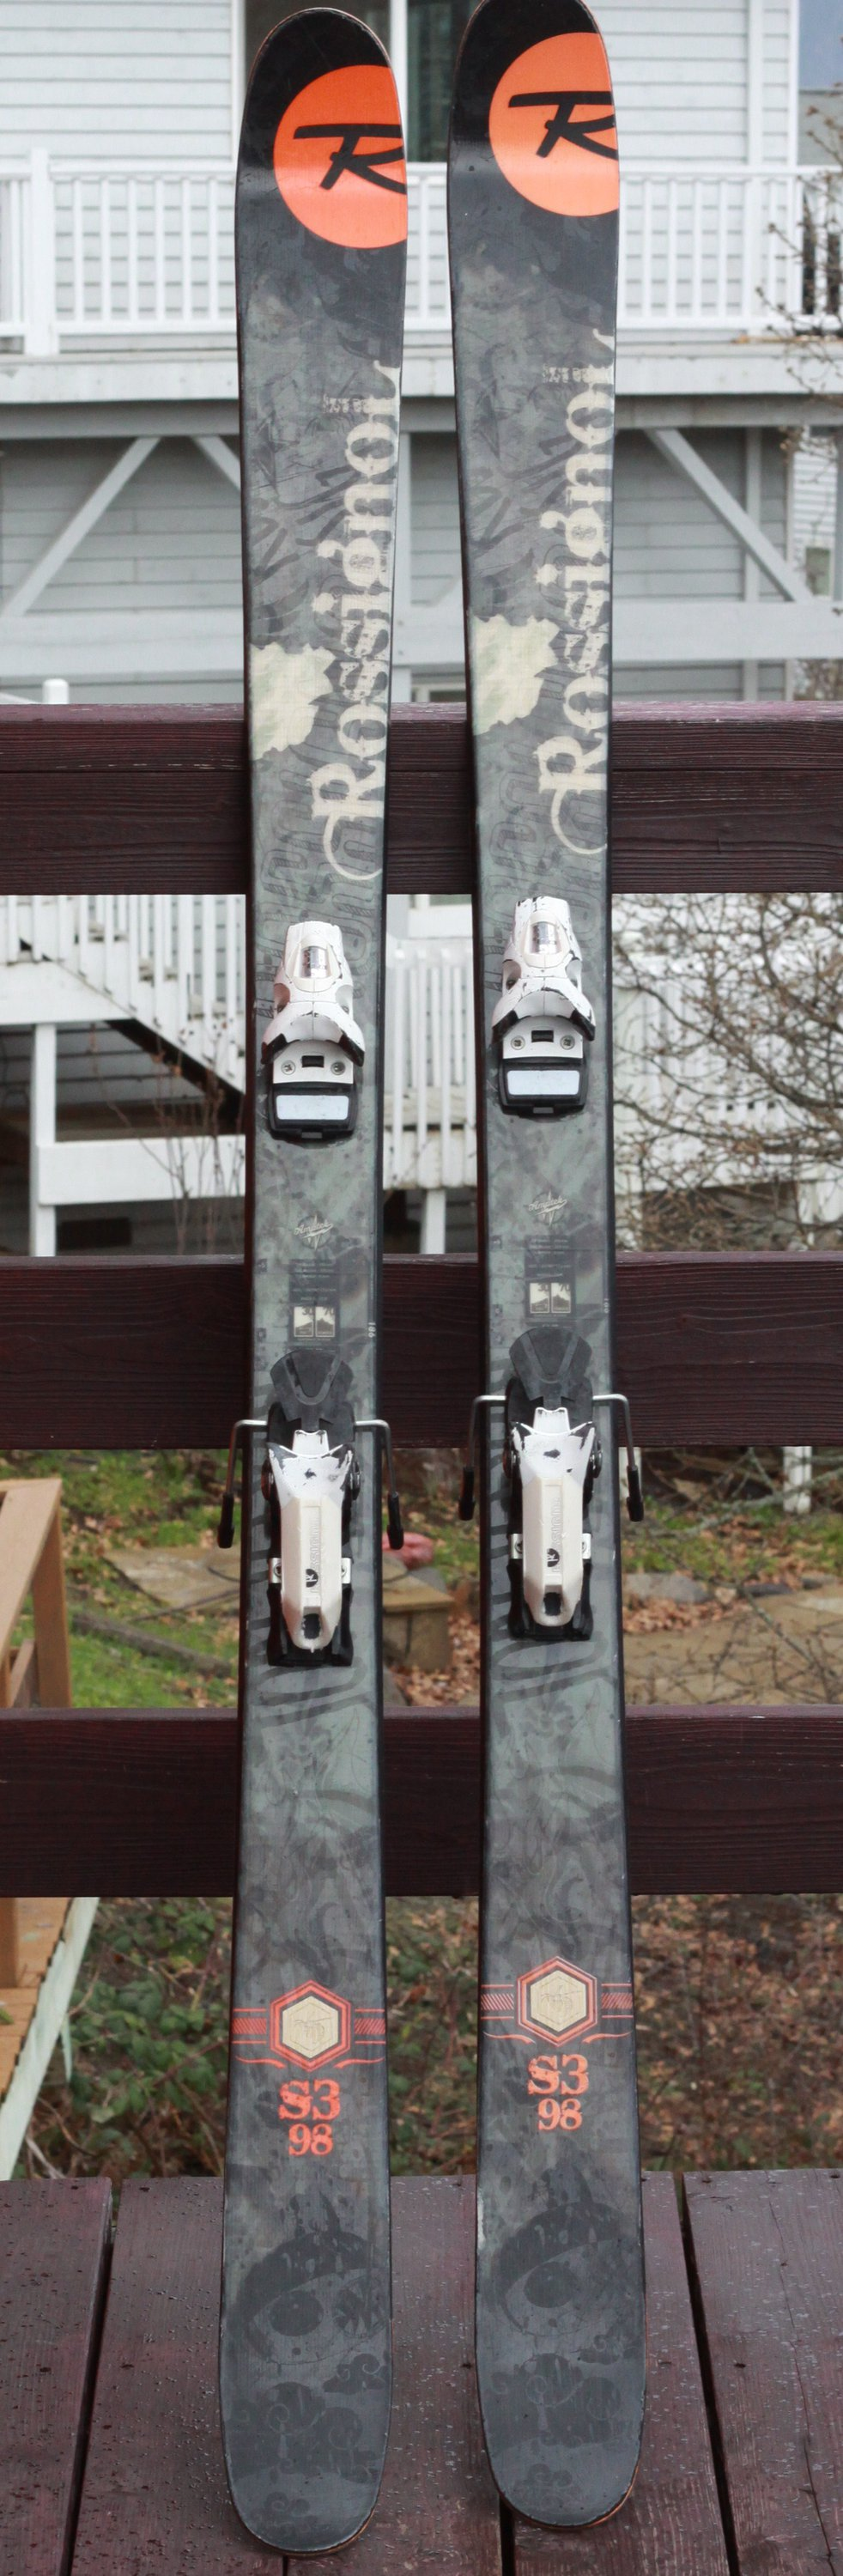 Rossignol S3 - 1 of 2